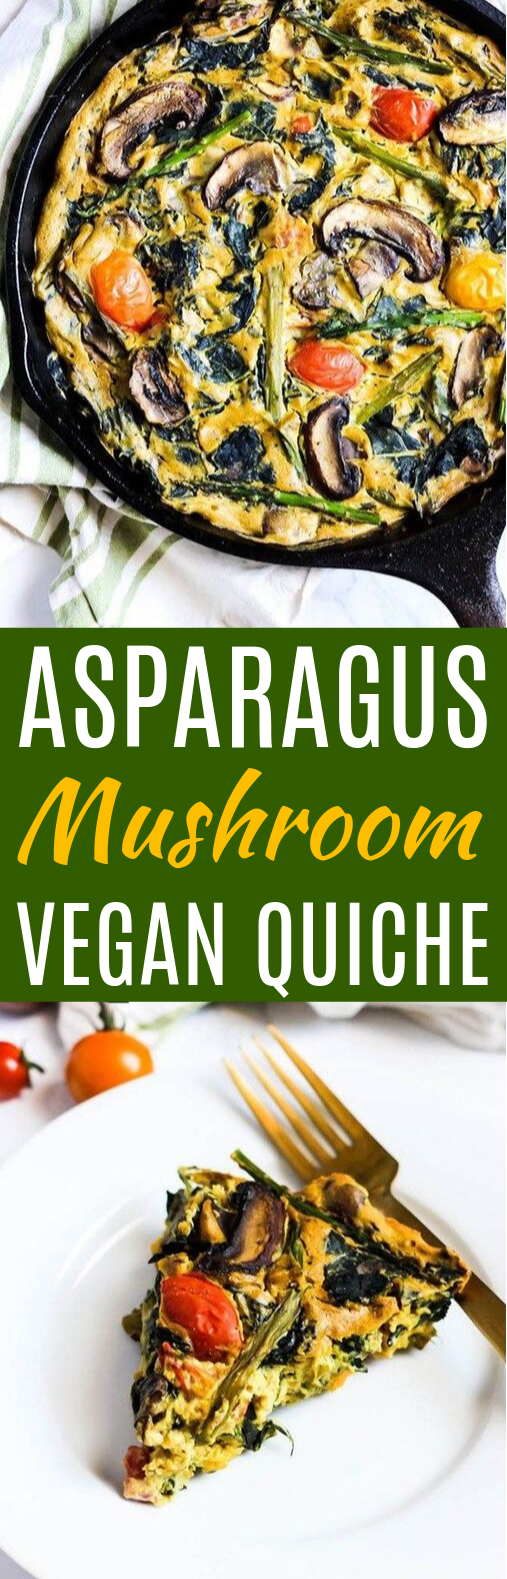 Asparagus & Mushroom Vegan Quiche #breakfast #vegetarian